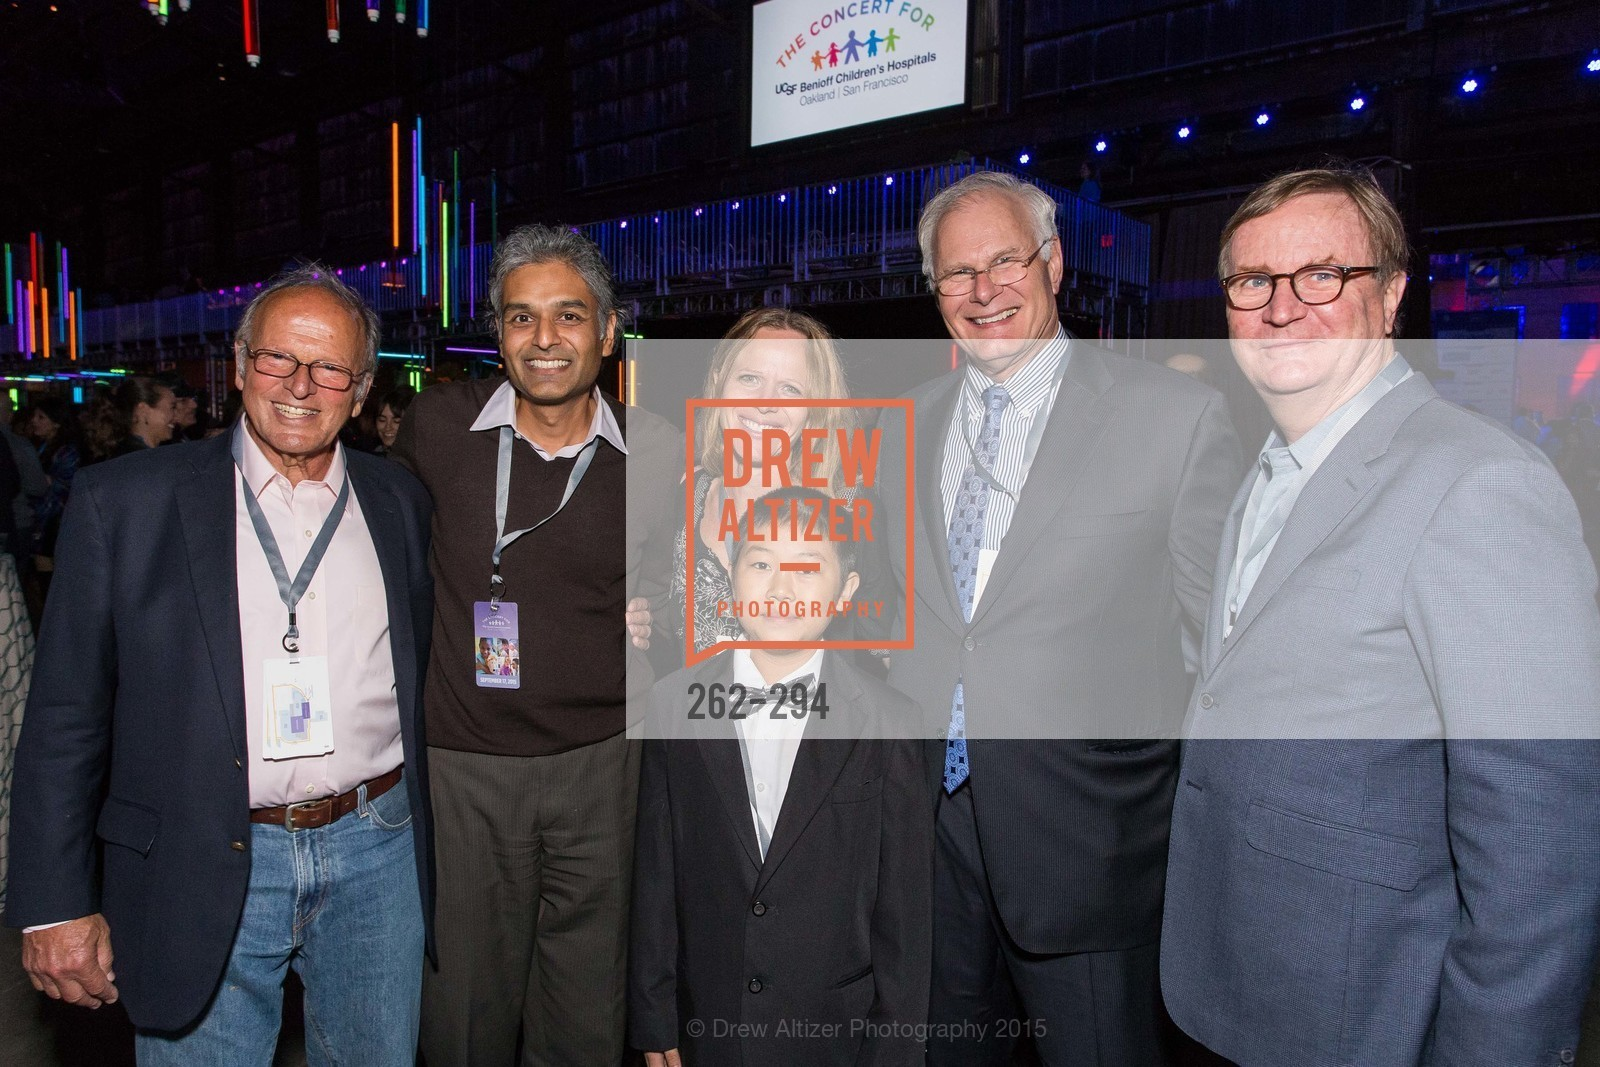 Burt Lubin, Anu Agrawal, Jennifer Michlitsch, Zhenkang Zhao, Mark Laret, Sam Hawgood, The Concert For UCSF Benioff Children's Hospital, Pier 70, September 17th, 2015,Drew Altizer, Drew Altizer Photography, full-service agency, private events, San Francisco photographer, photographer california